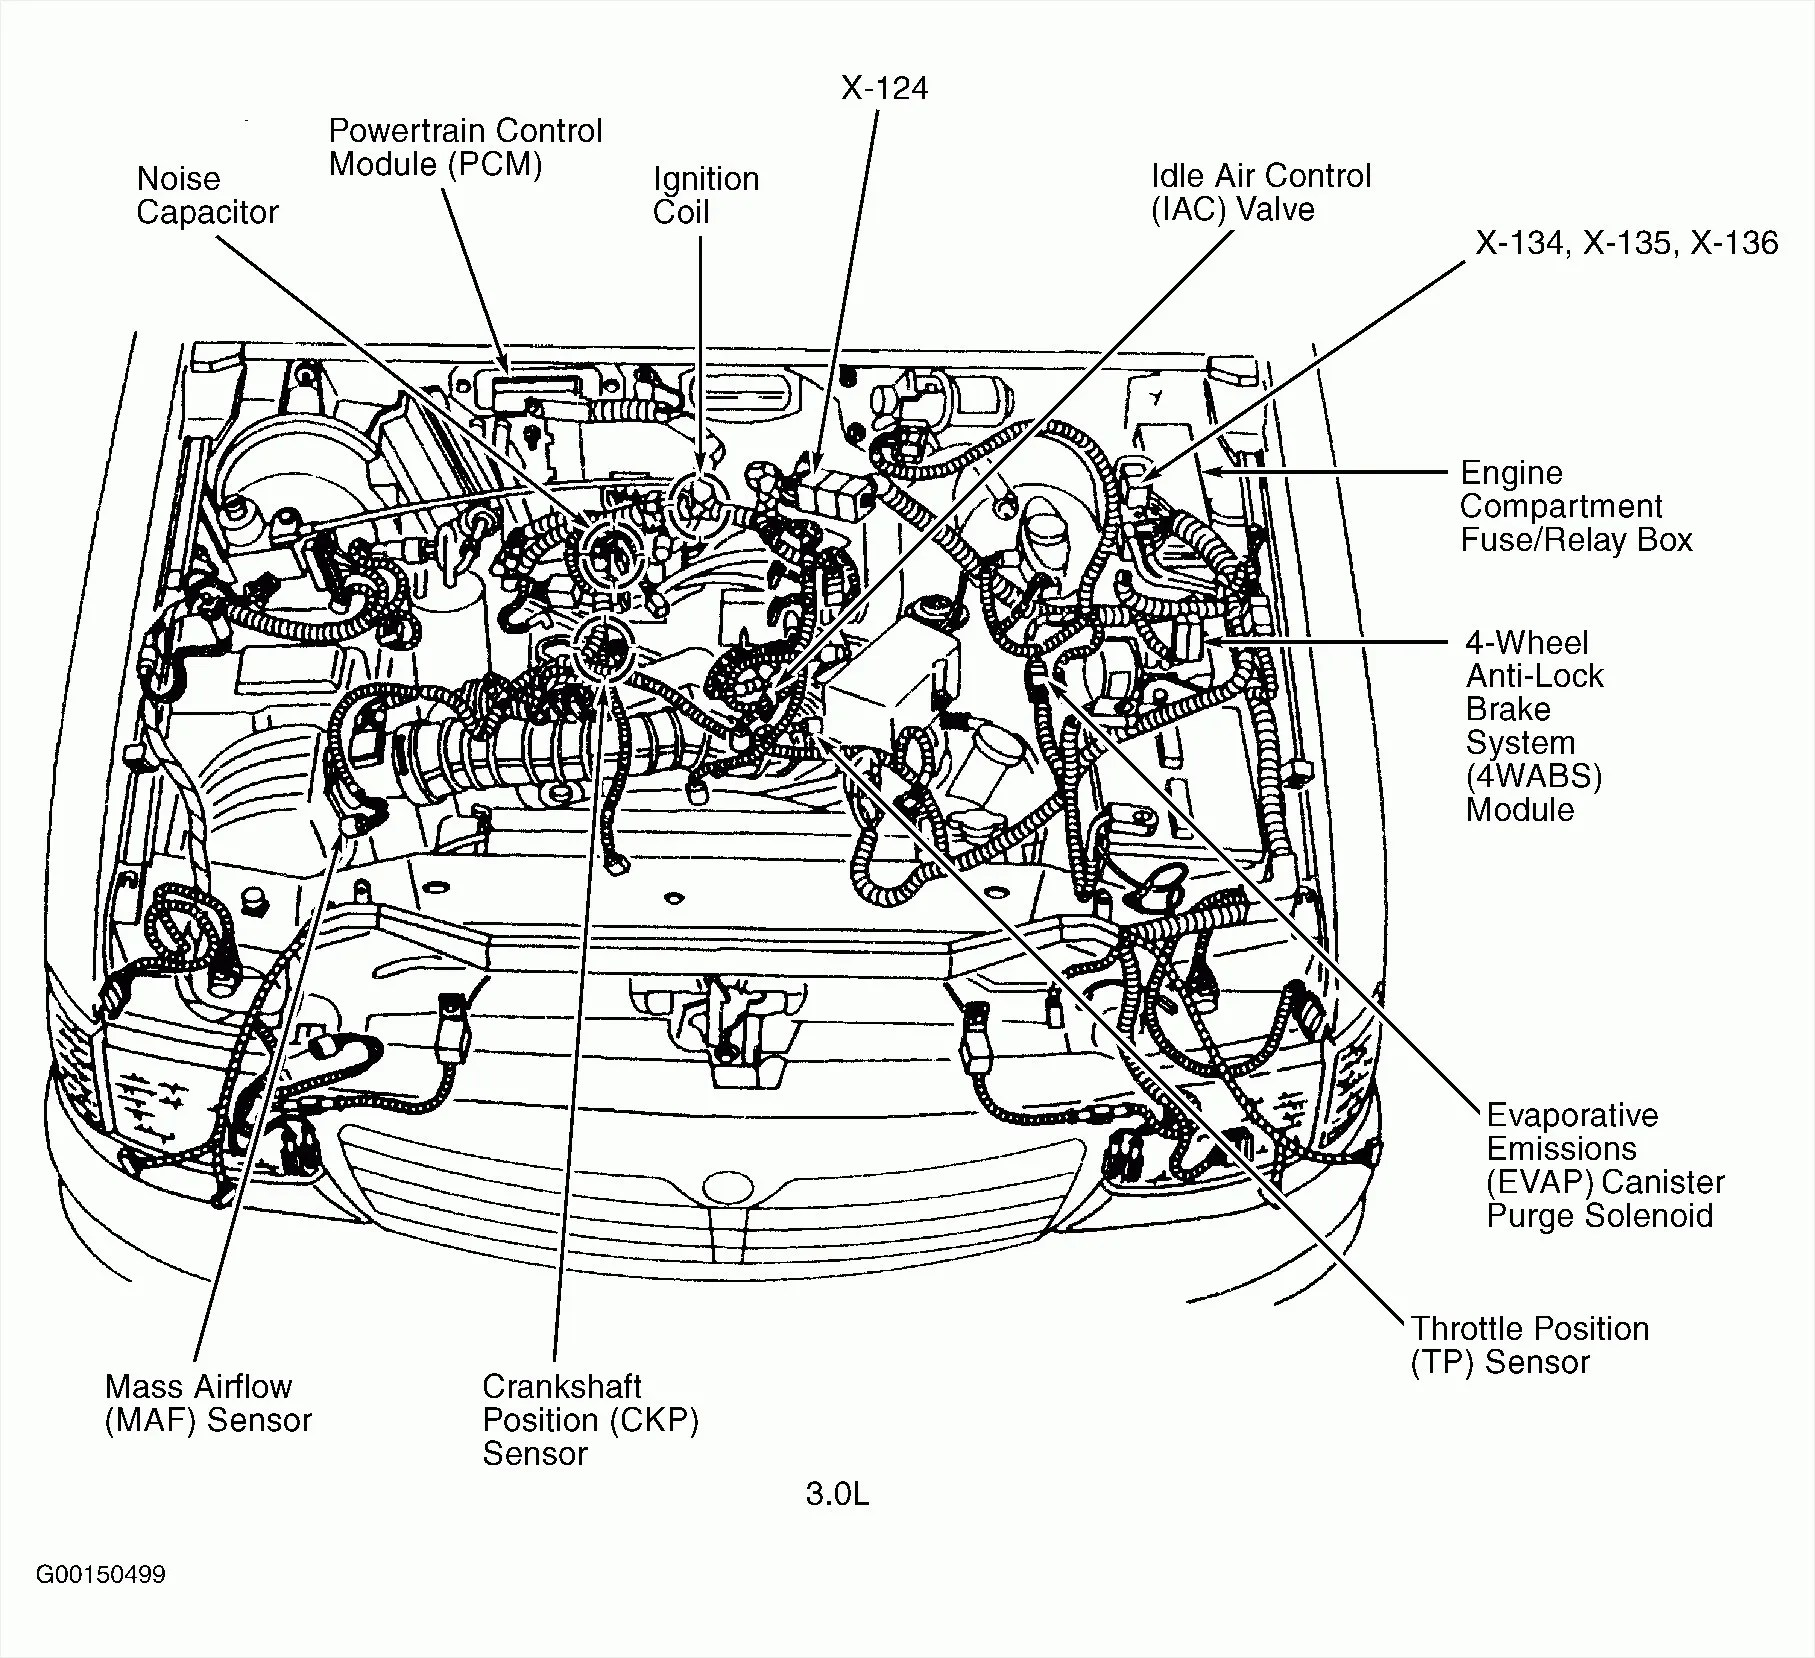 hight resolution of 3 1 l car engine diagram wire management u0026 wiring diagramv16 engine diagram 18